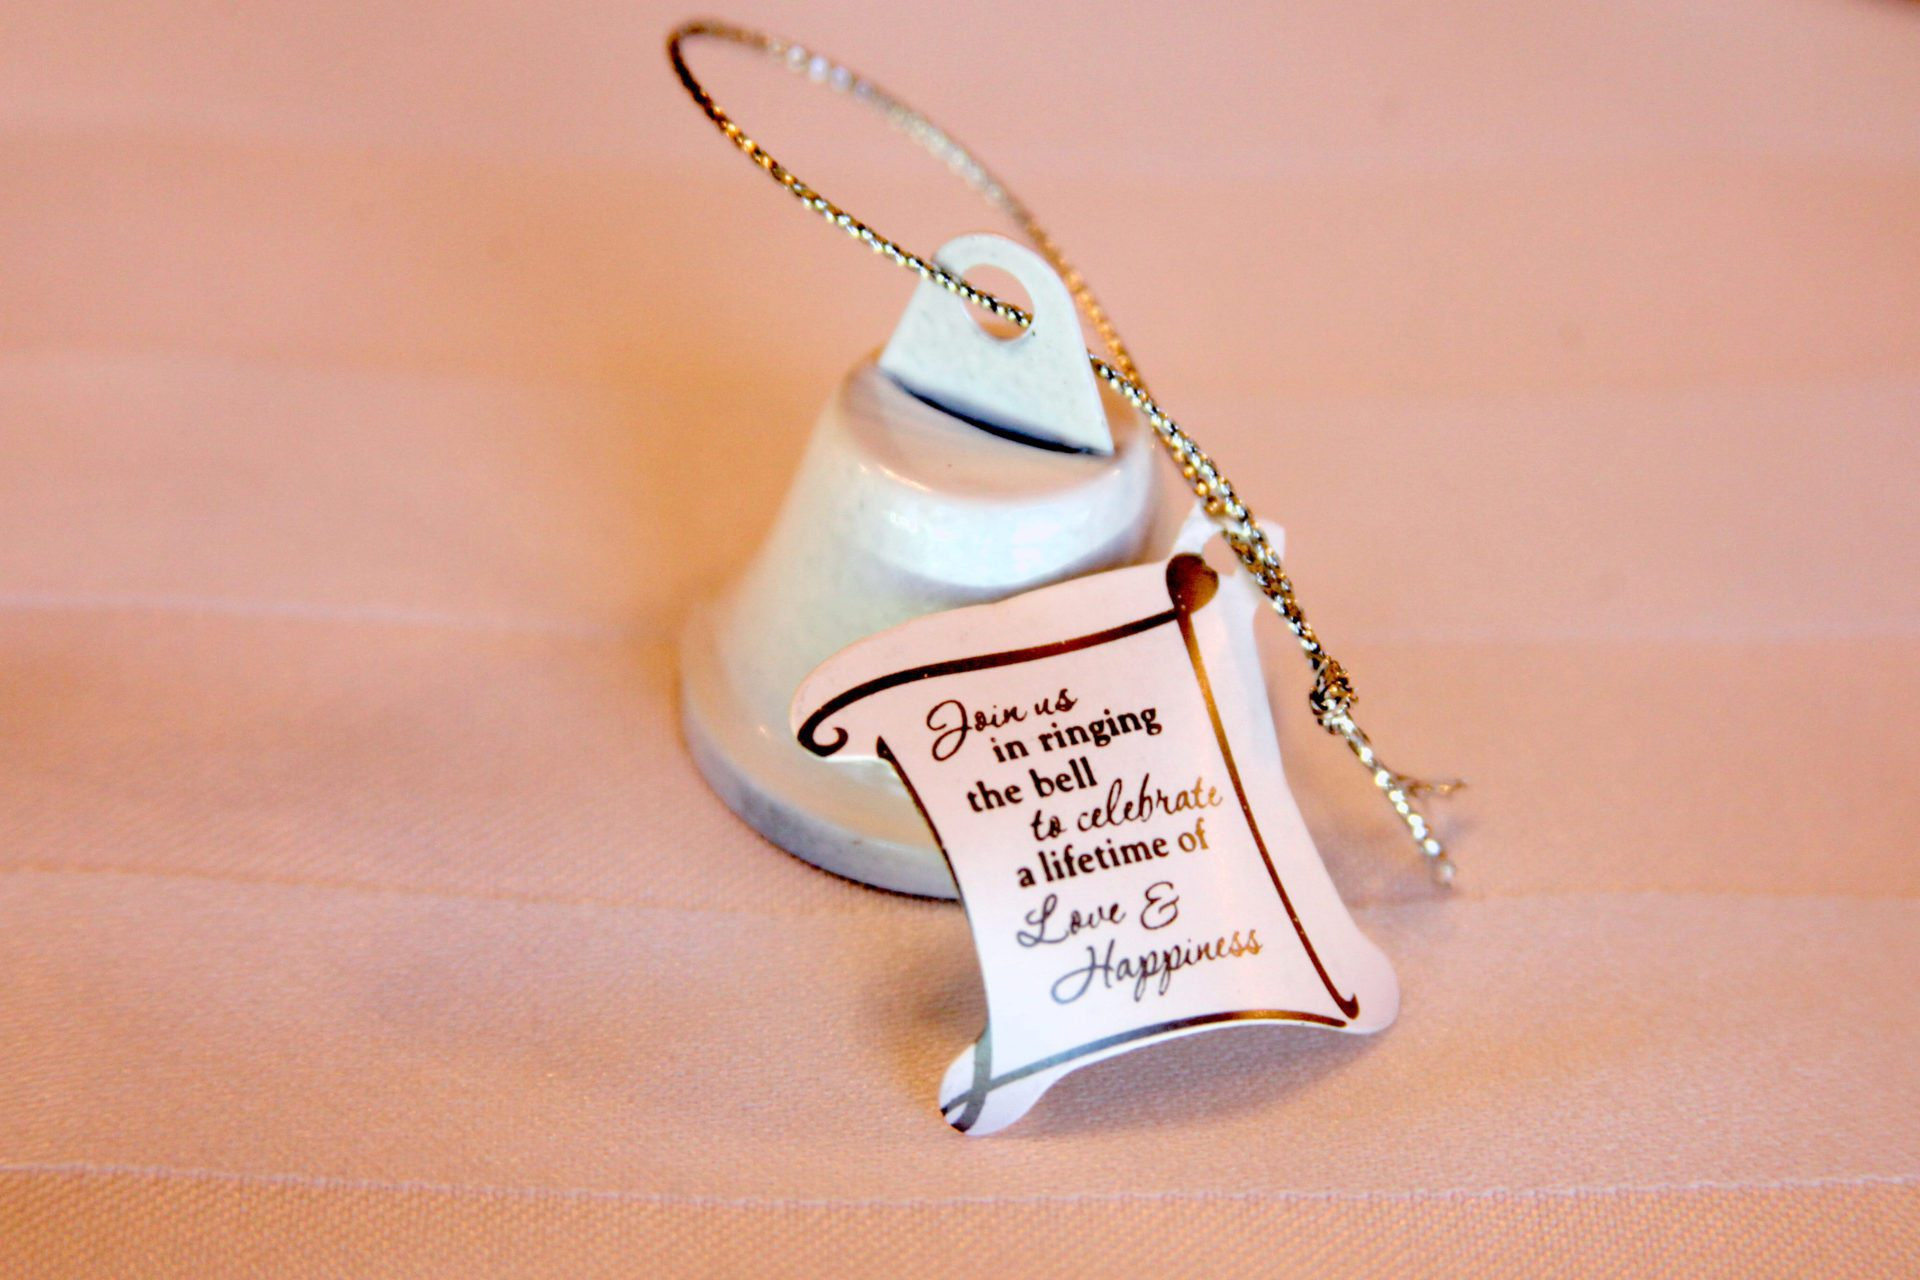 Bell wedding favors - Join us in ringing the bell to celebrate a lifetime of Love and Happiness